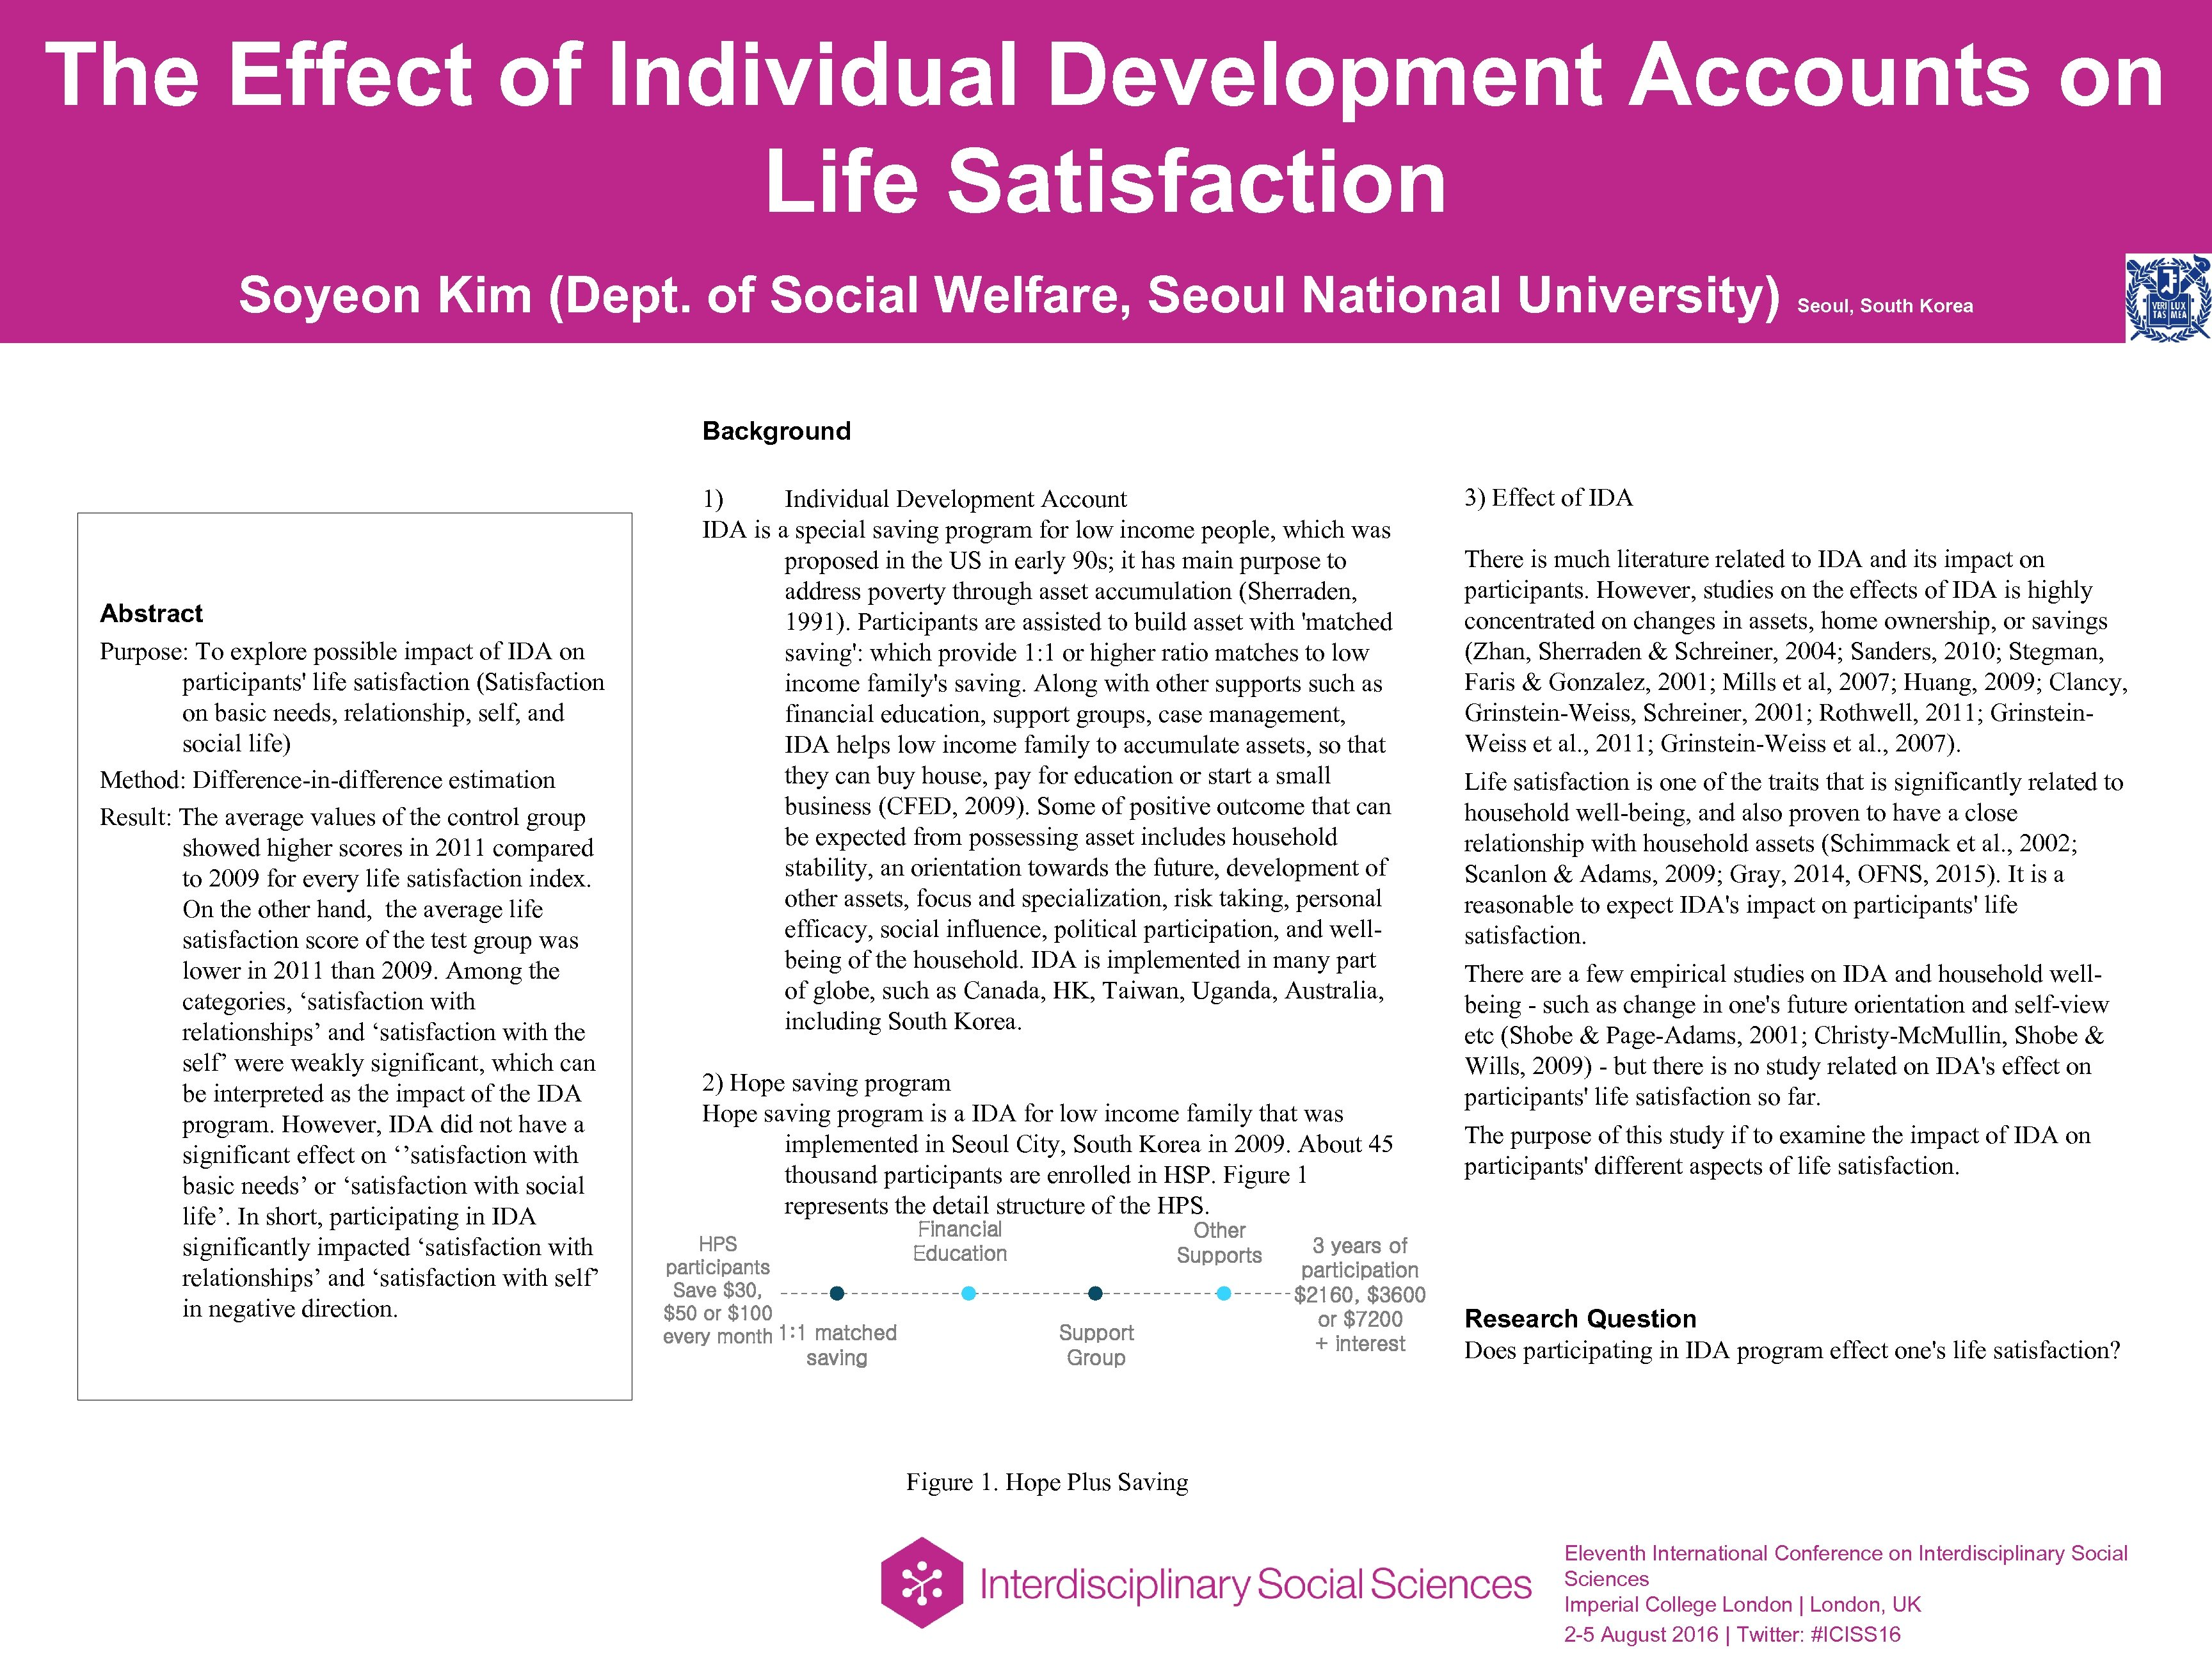 The Effect of Individual Development Accounts on Life Satisfaction Soyeon Kim (Dept. of Social